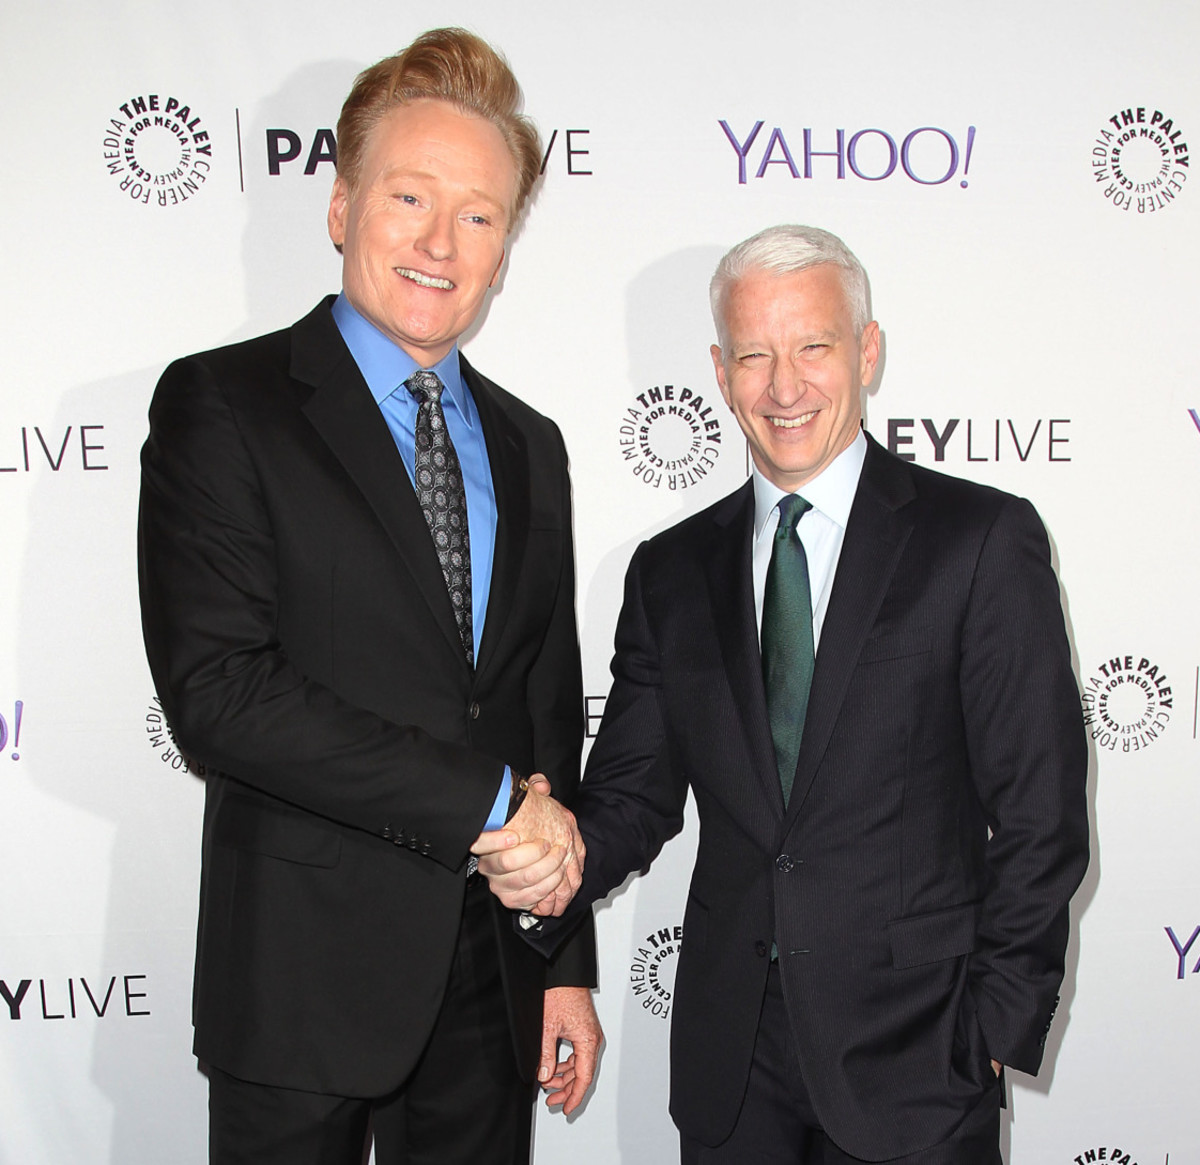 Conan O'Brien and Anderson Cooper at The Paley Center for Medialast week. (Photo: Courtesy The Paley Center for Media)